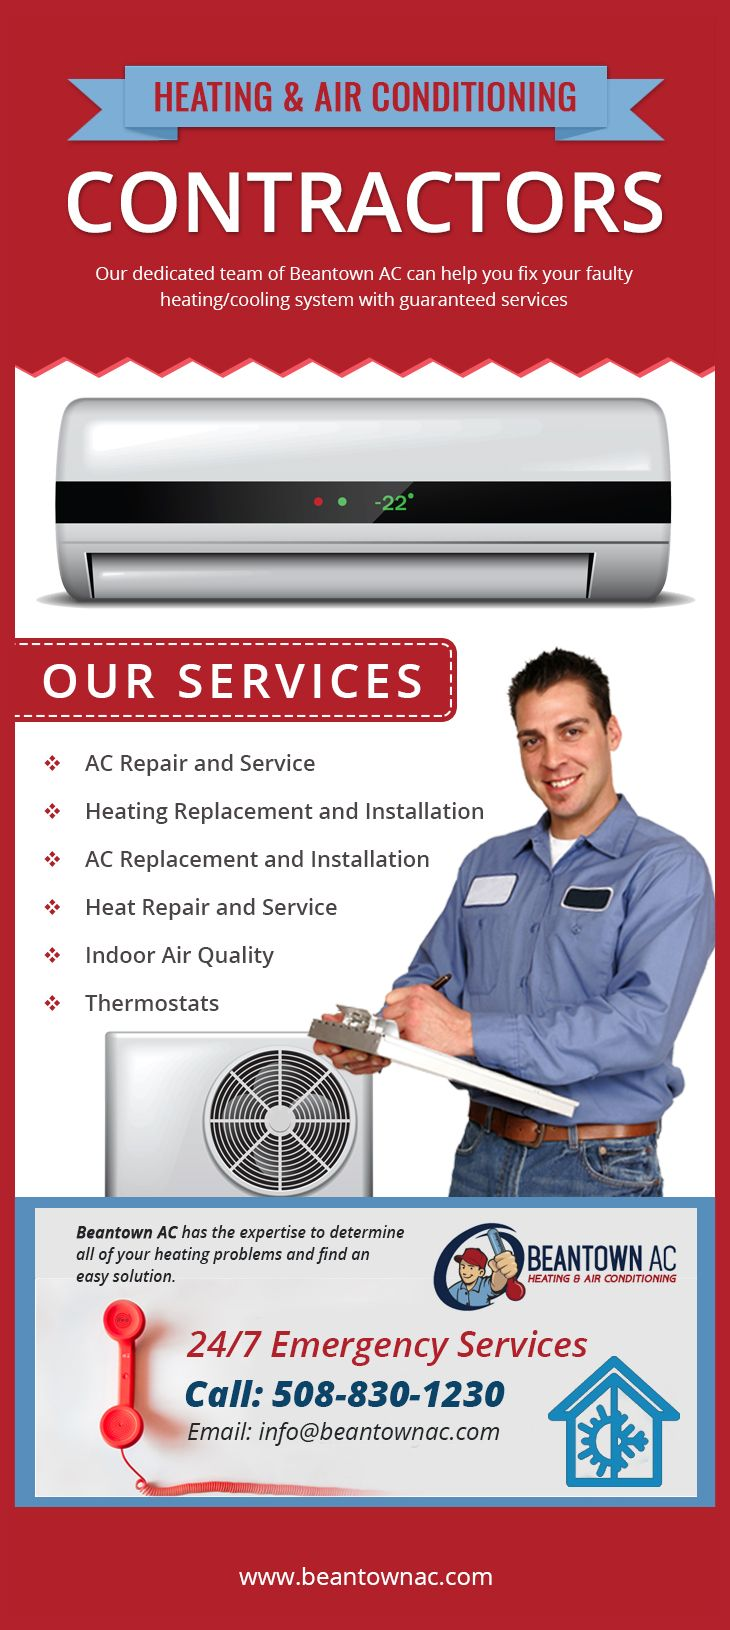 With the increasing demand of heating and airconditioning